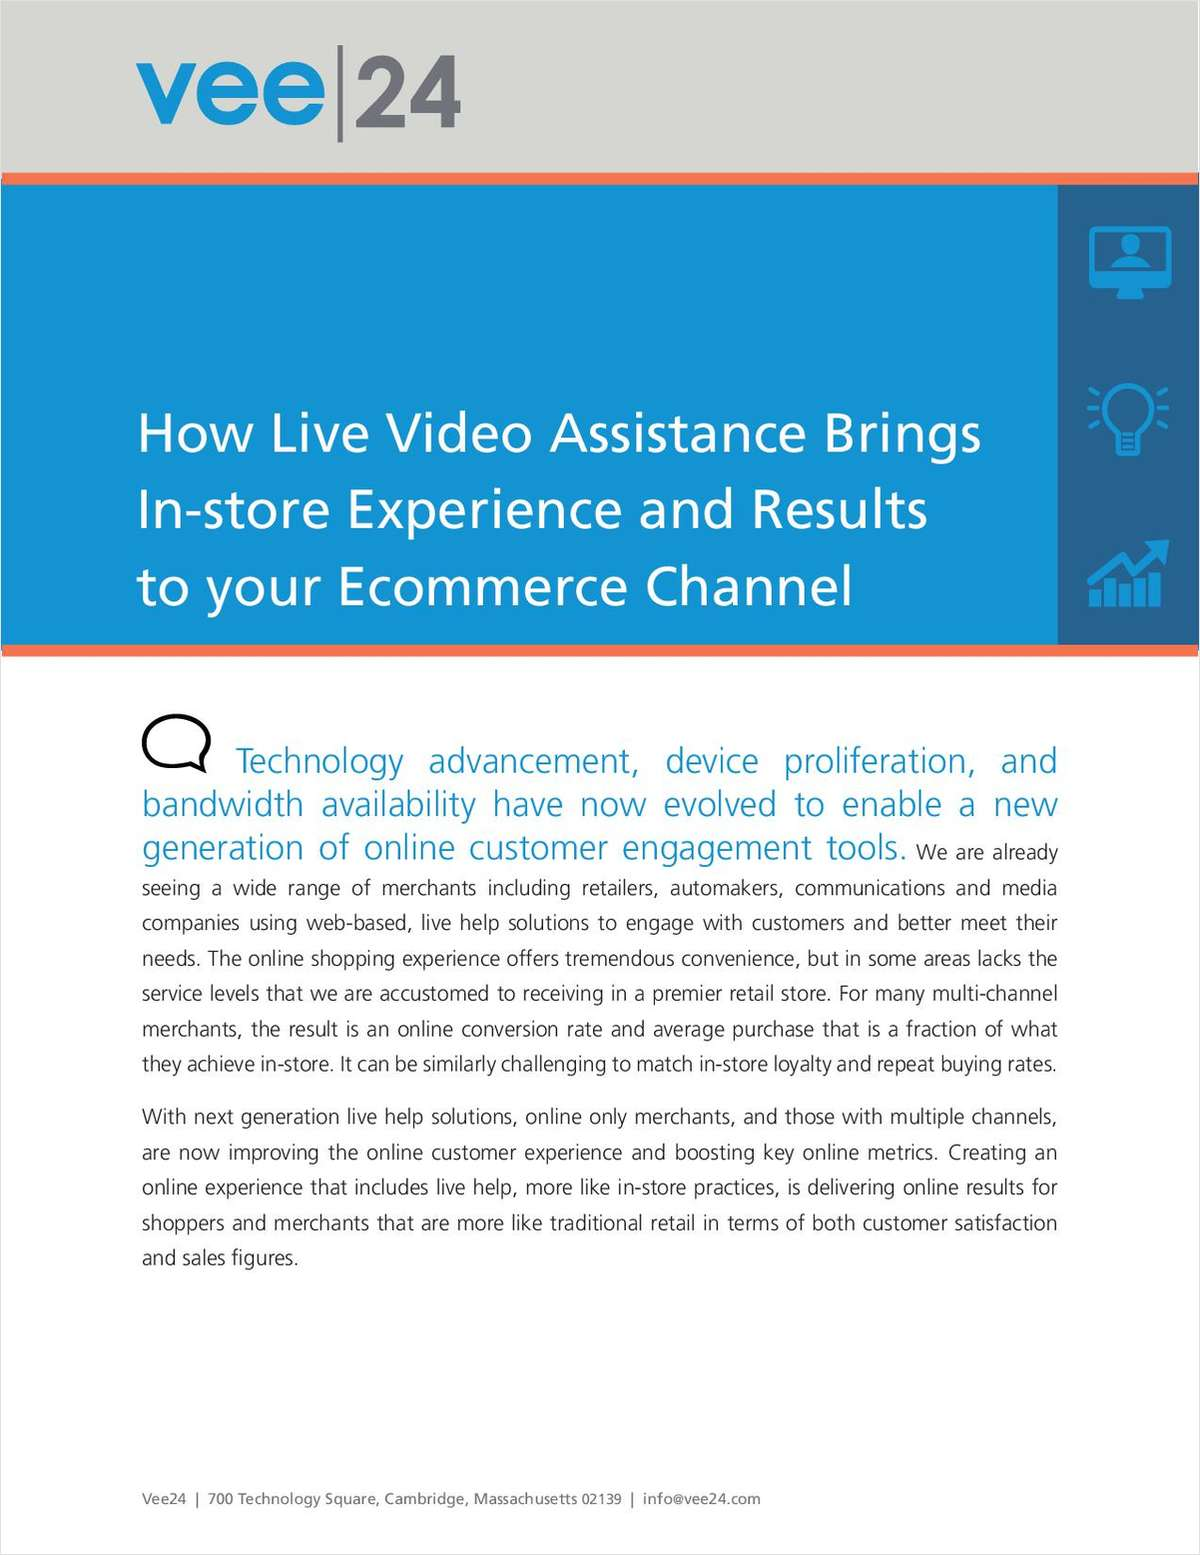 How Live Video Assistance Brings In-store Experience and Results to your Ecommerce Channel